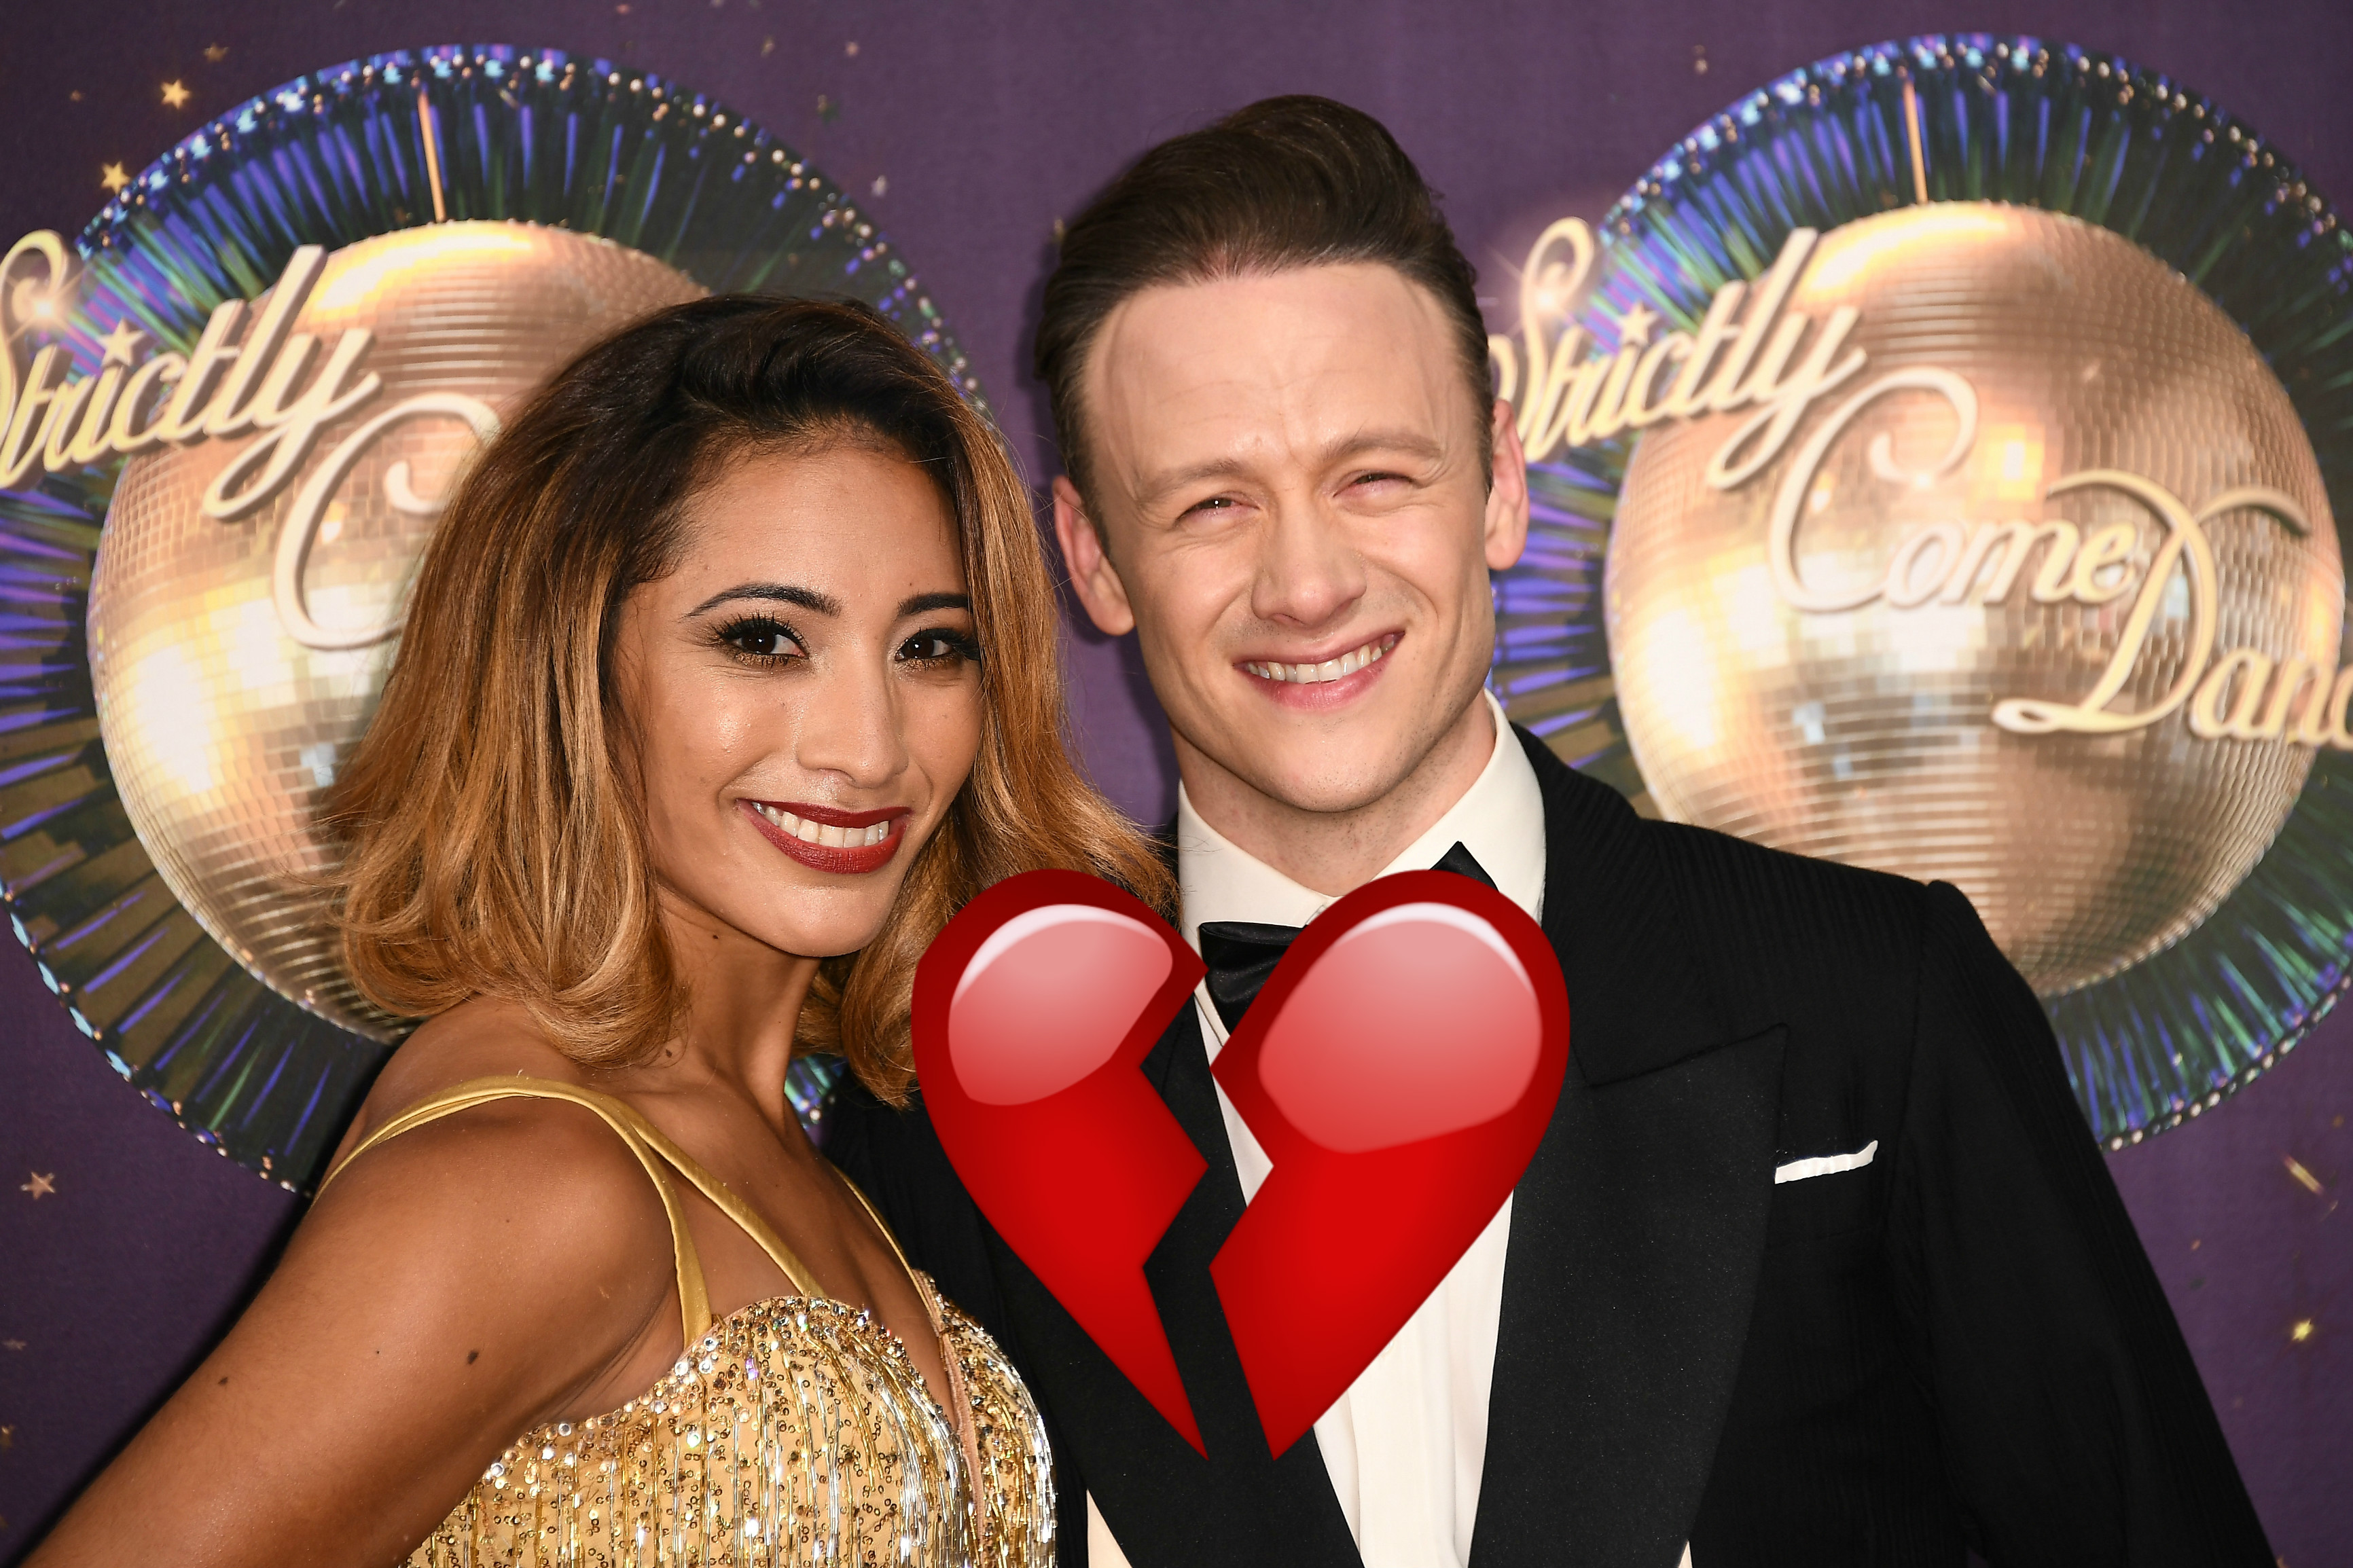 Kevin and Karen Clifton split